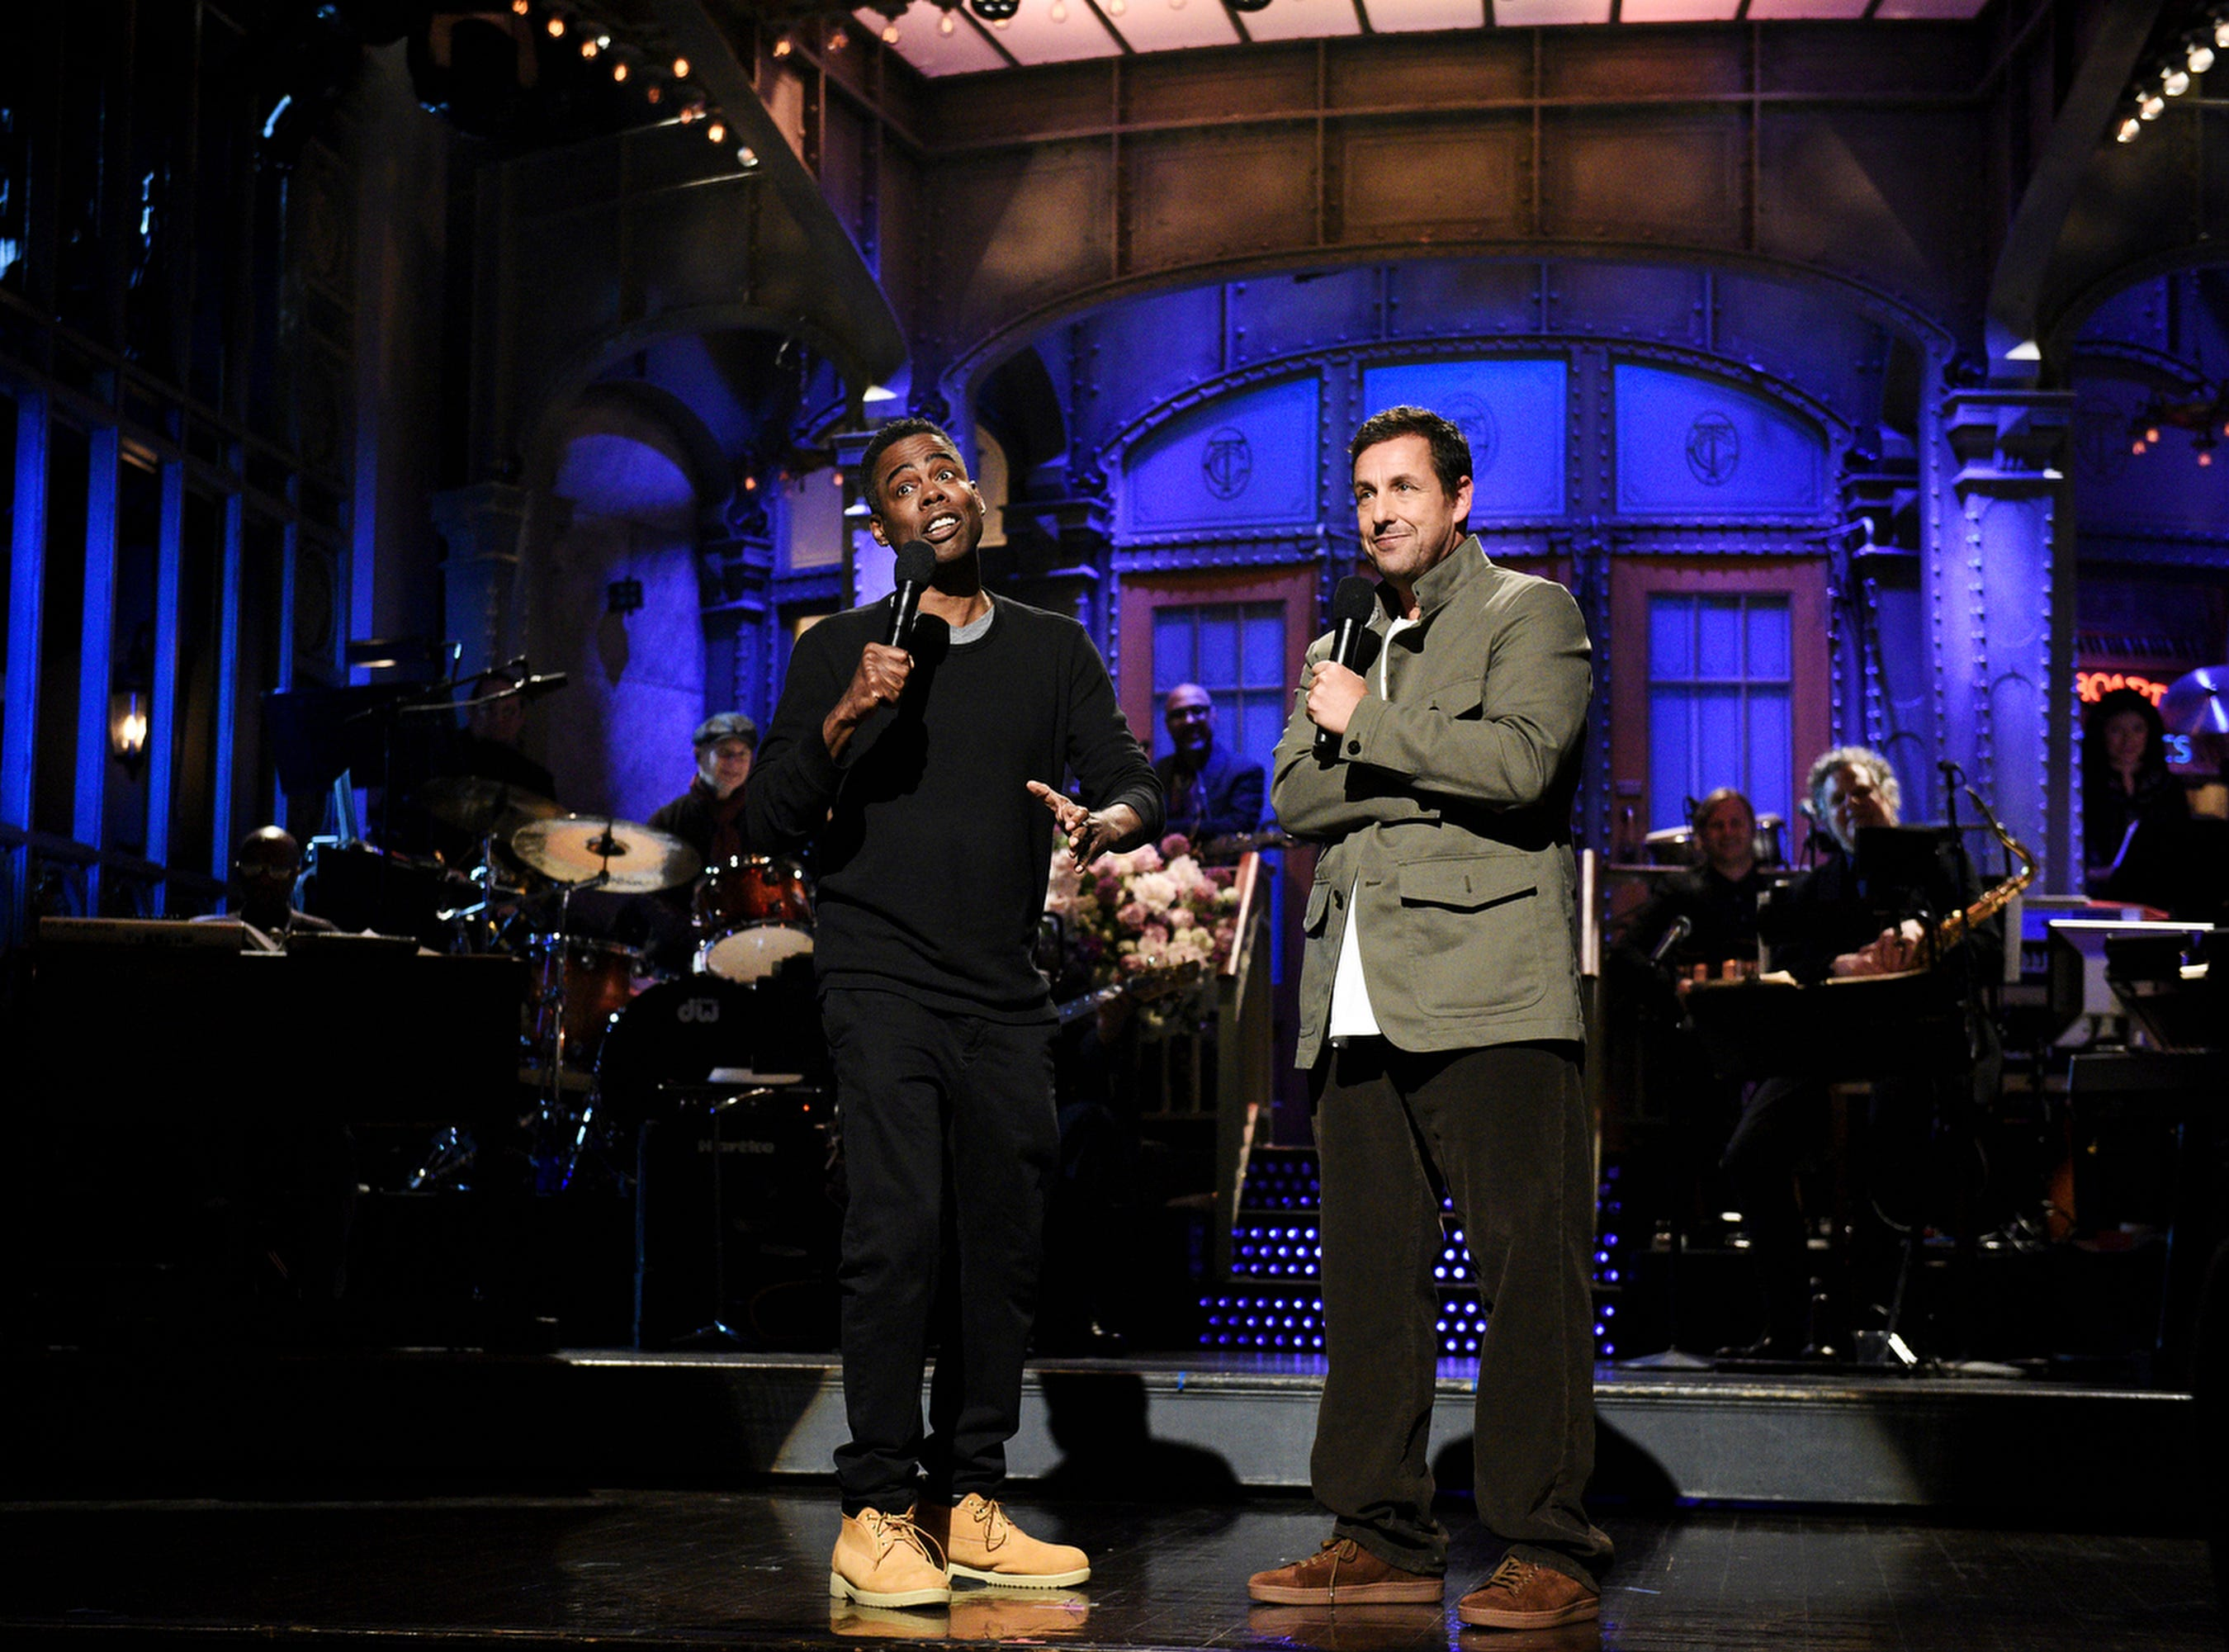 """Adam Sandler returned to """"SNL"""" with a song during his monologue about getting fired from the show. Chris Rock also showed up as a guest to help out his former co-star."""